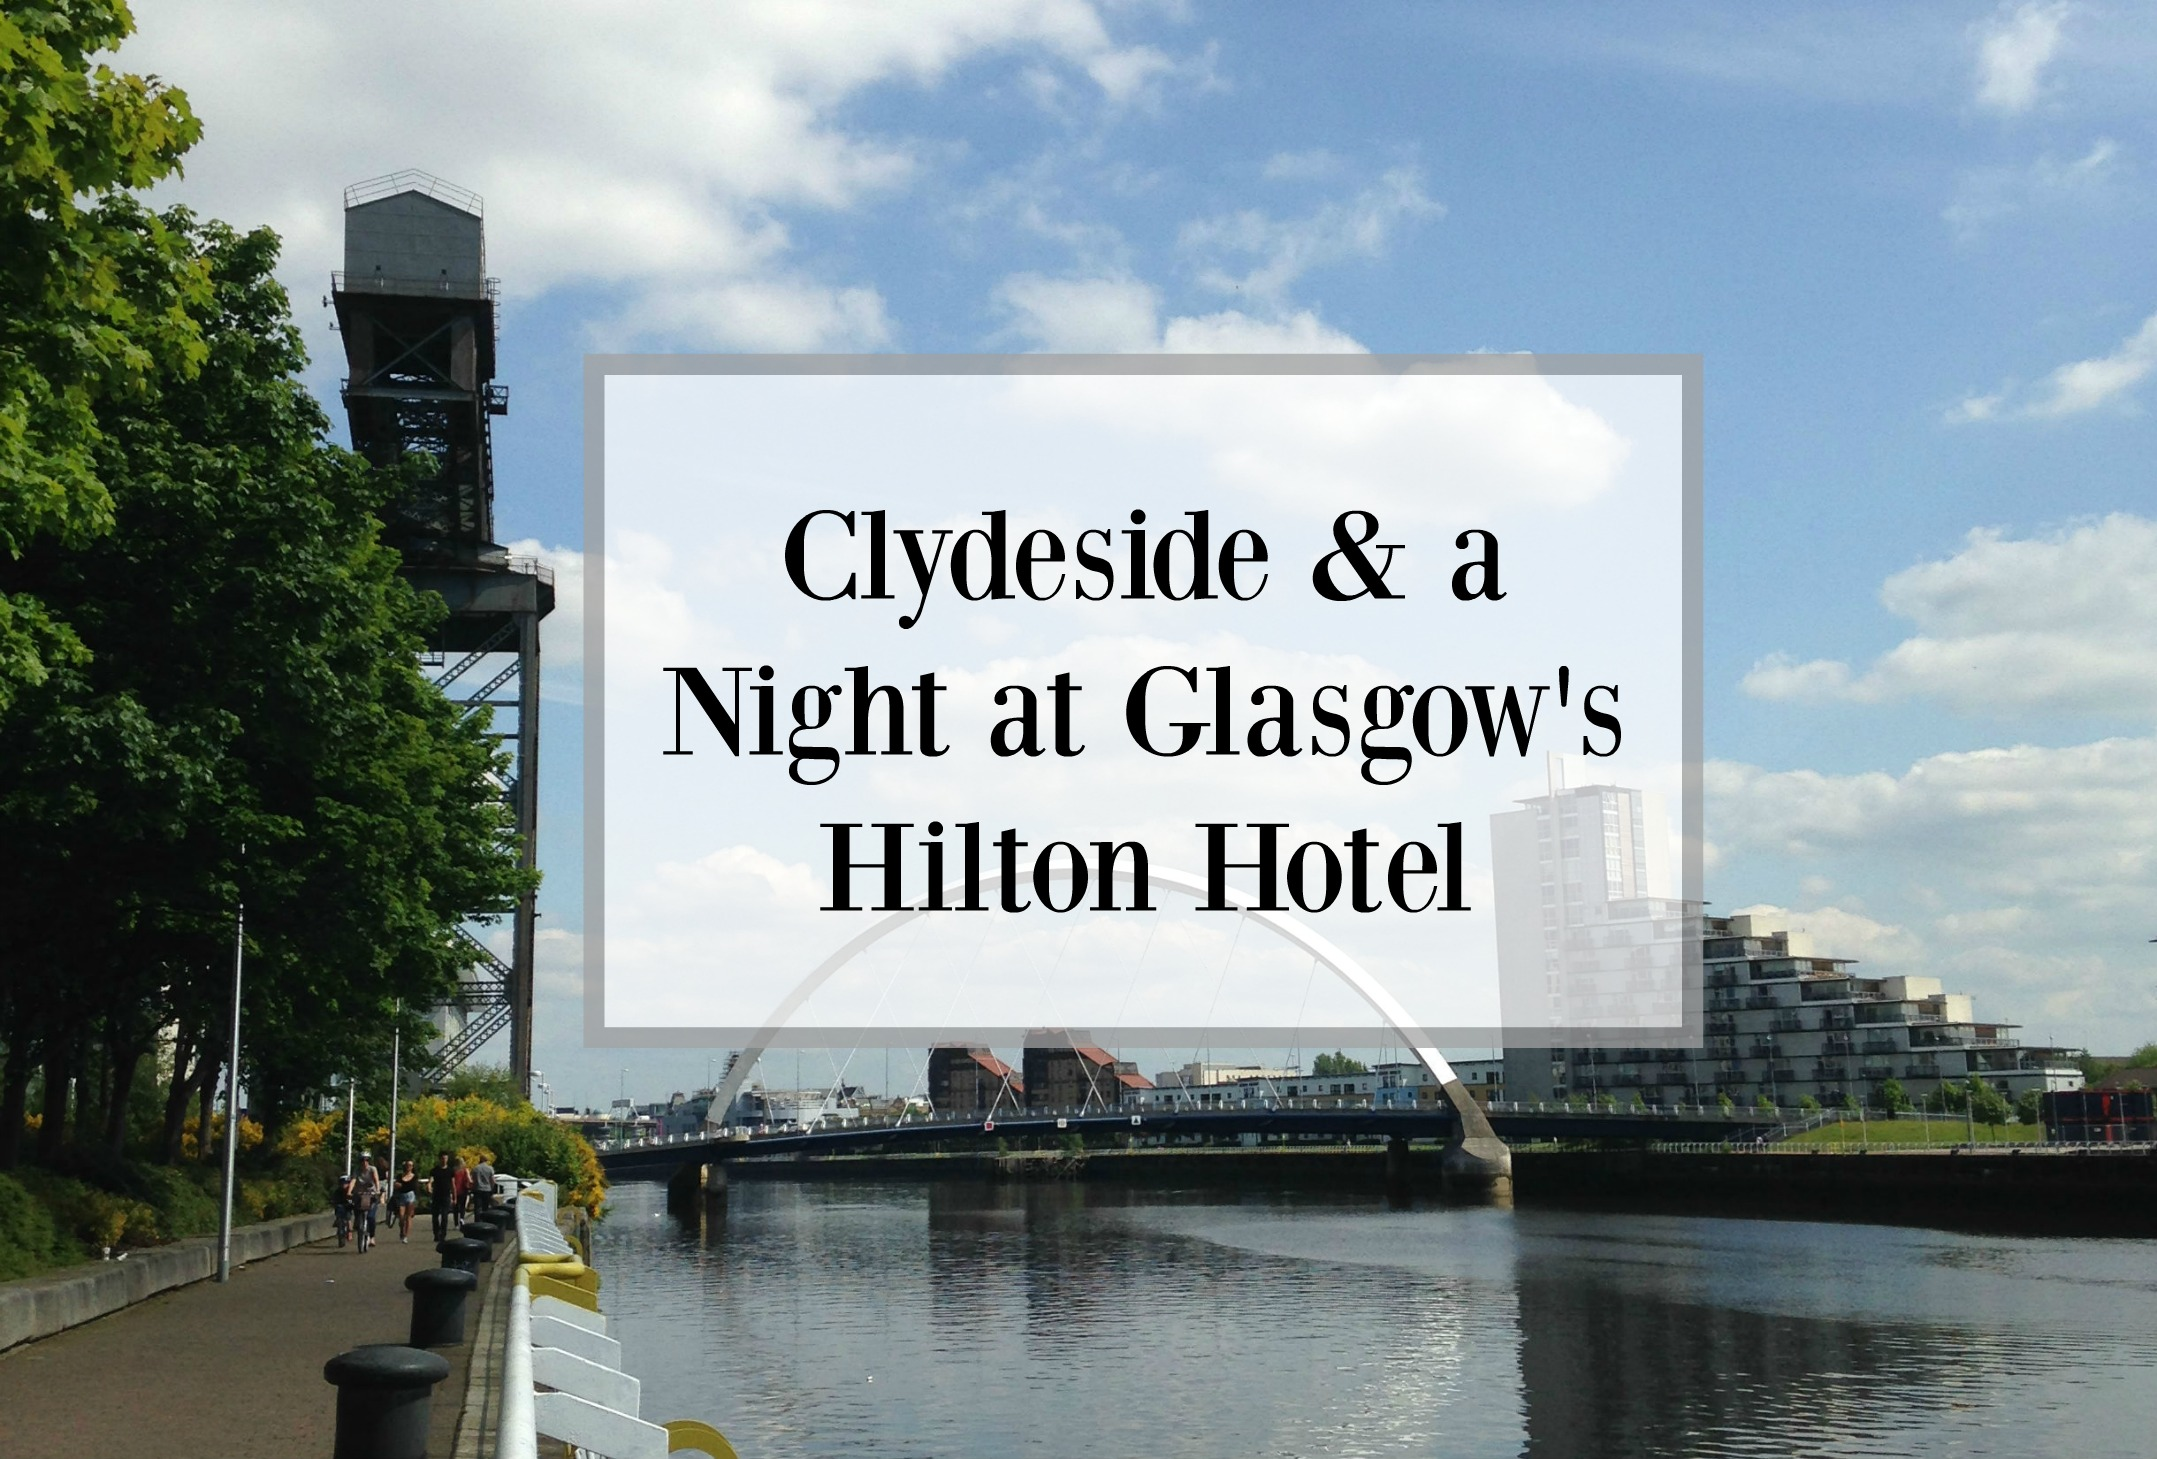 Clyde side & Hilton Hotel